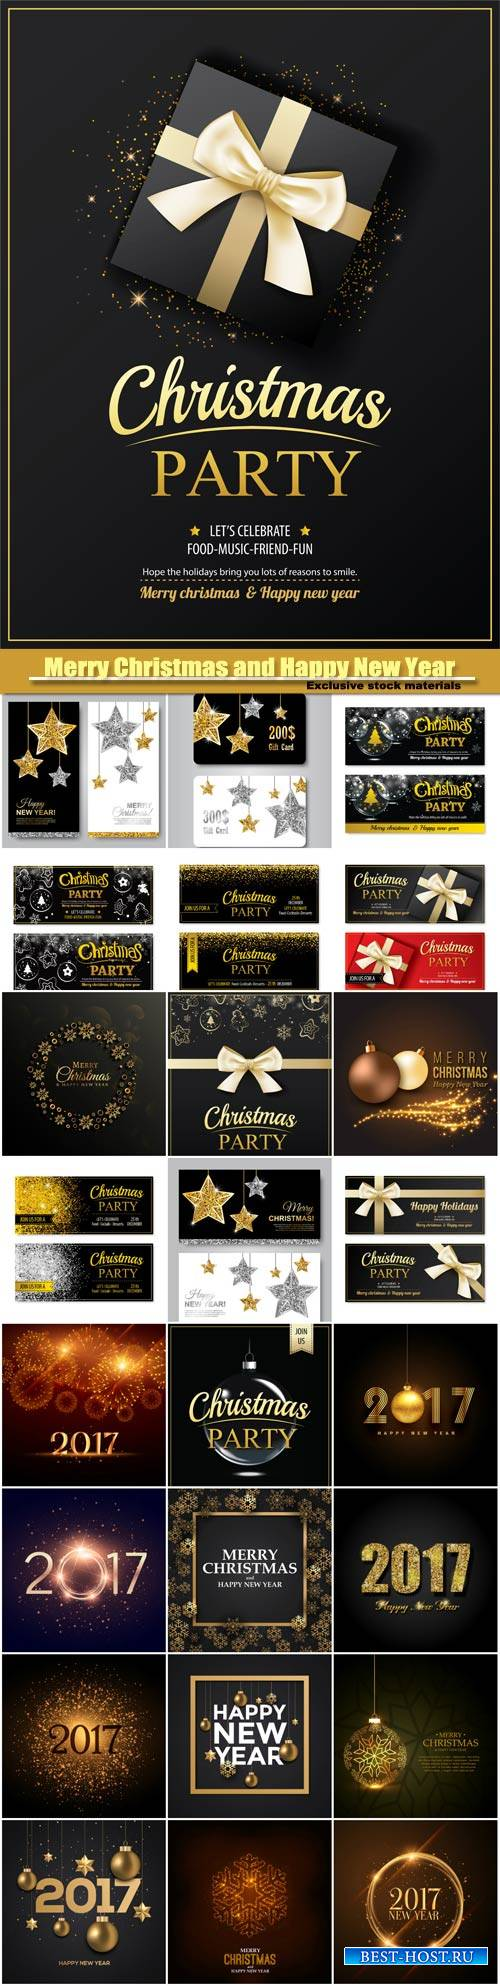 Merry Christmas and Happy New Year vector, invitation party banner, card design template, gold glittering